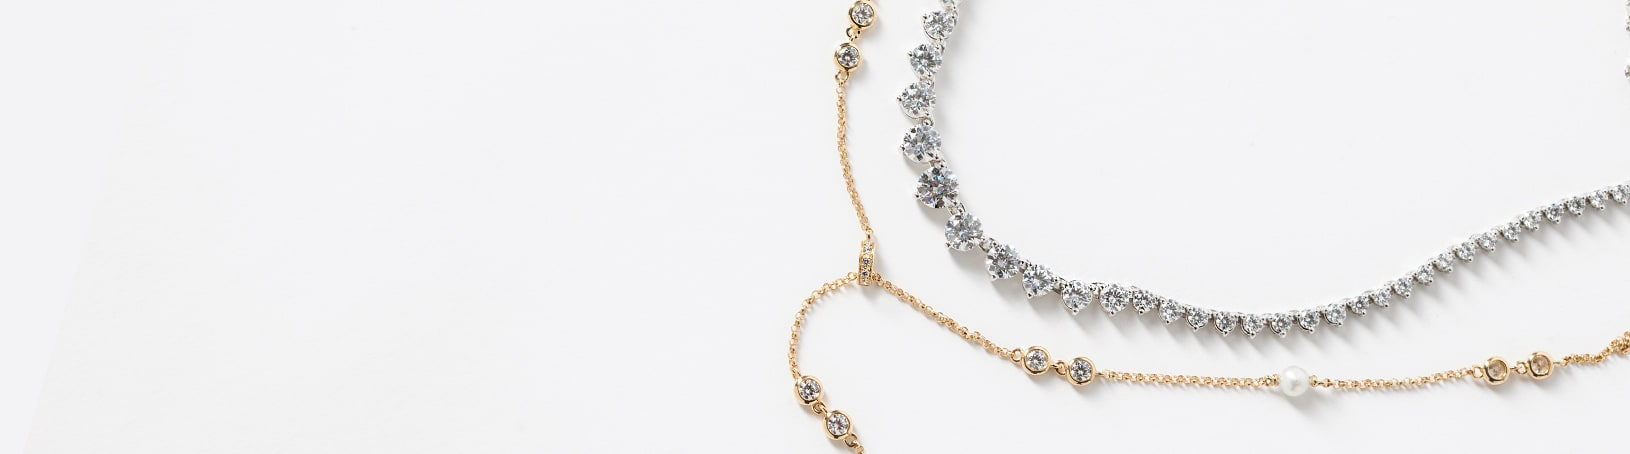 A yellow gold and a white gold necklace side by side